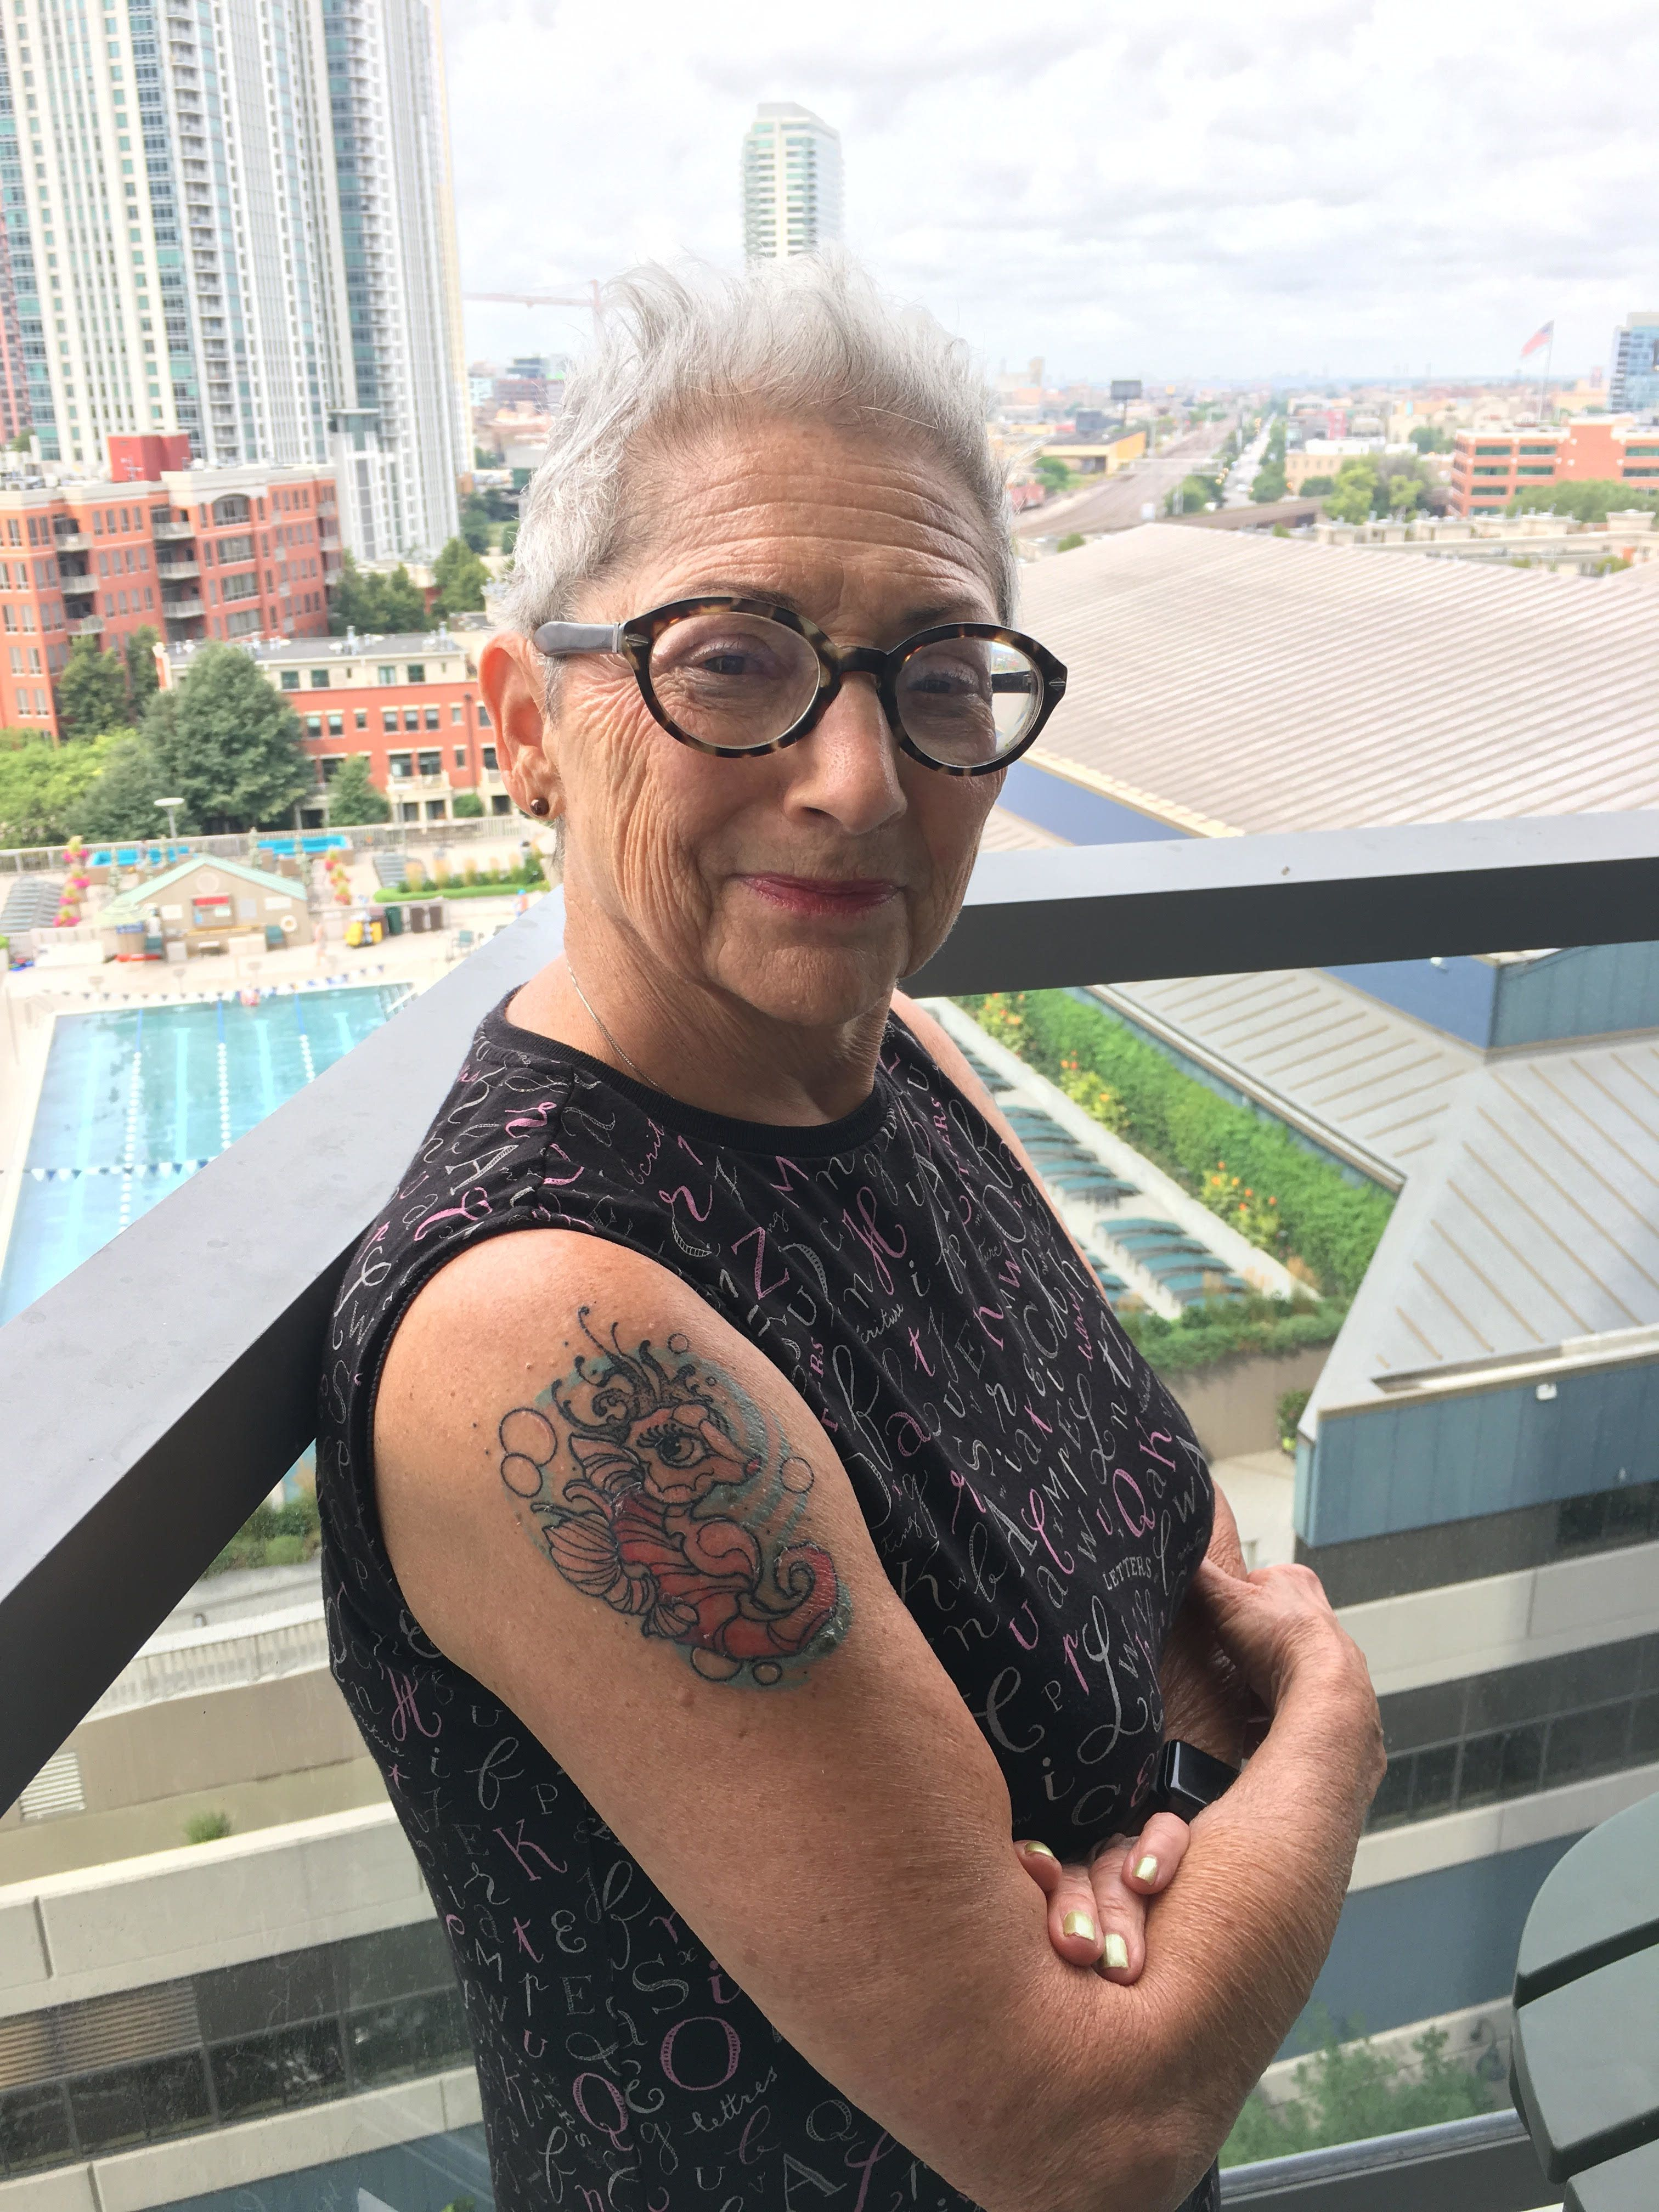 Why I Chose To Get A Tattoo Instead Of A Face-Lift For My 80th